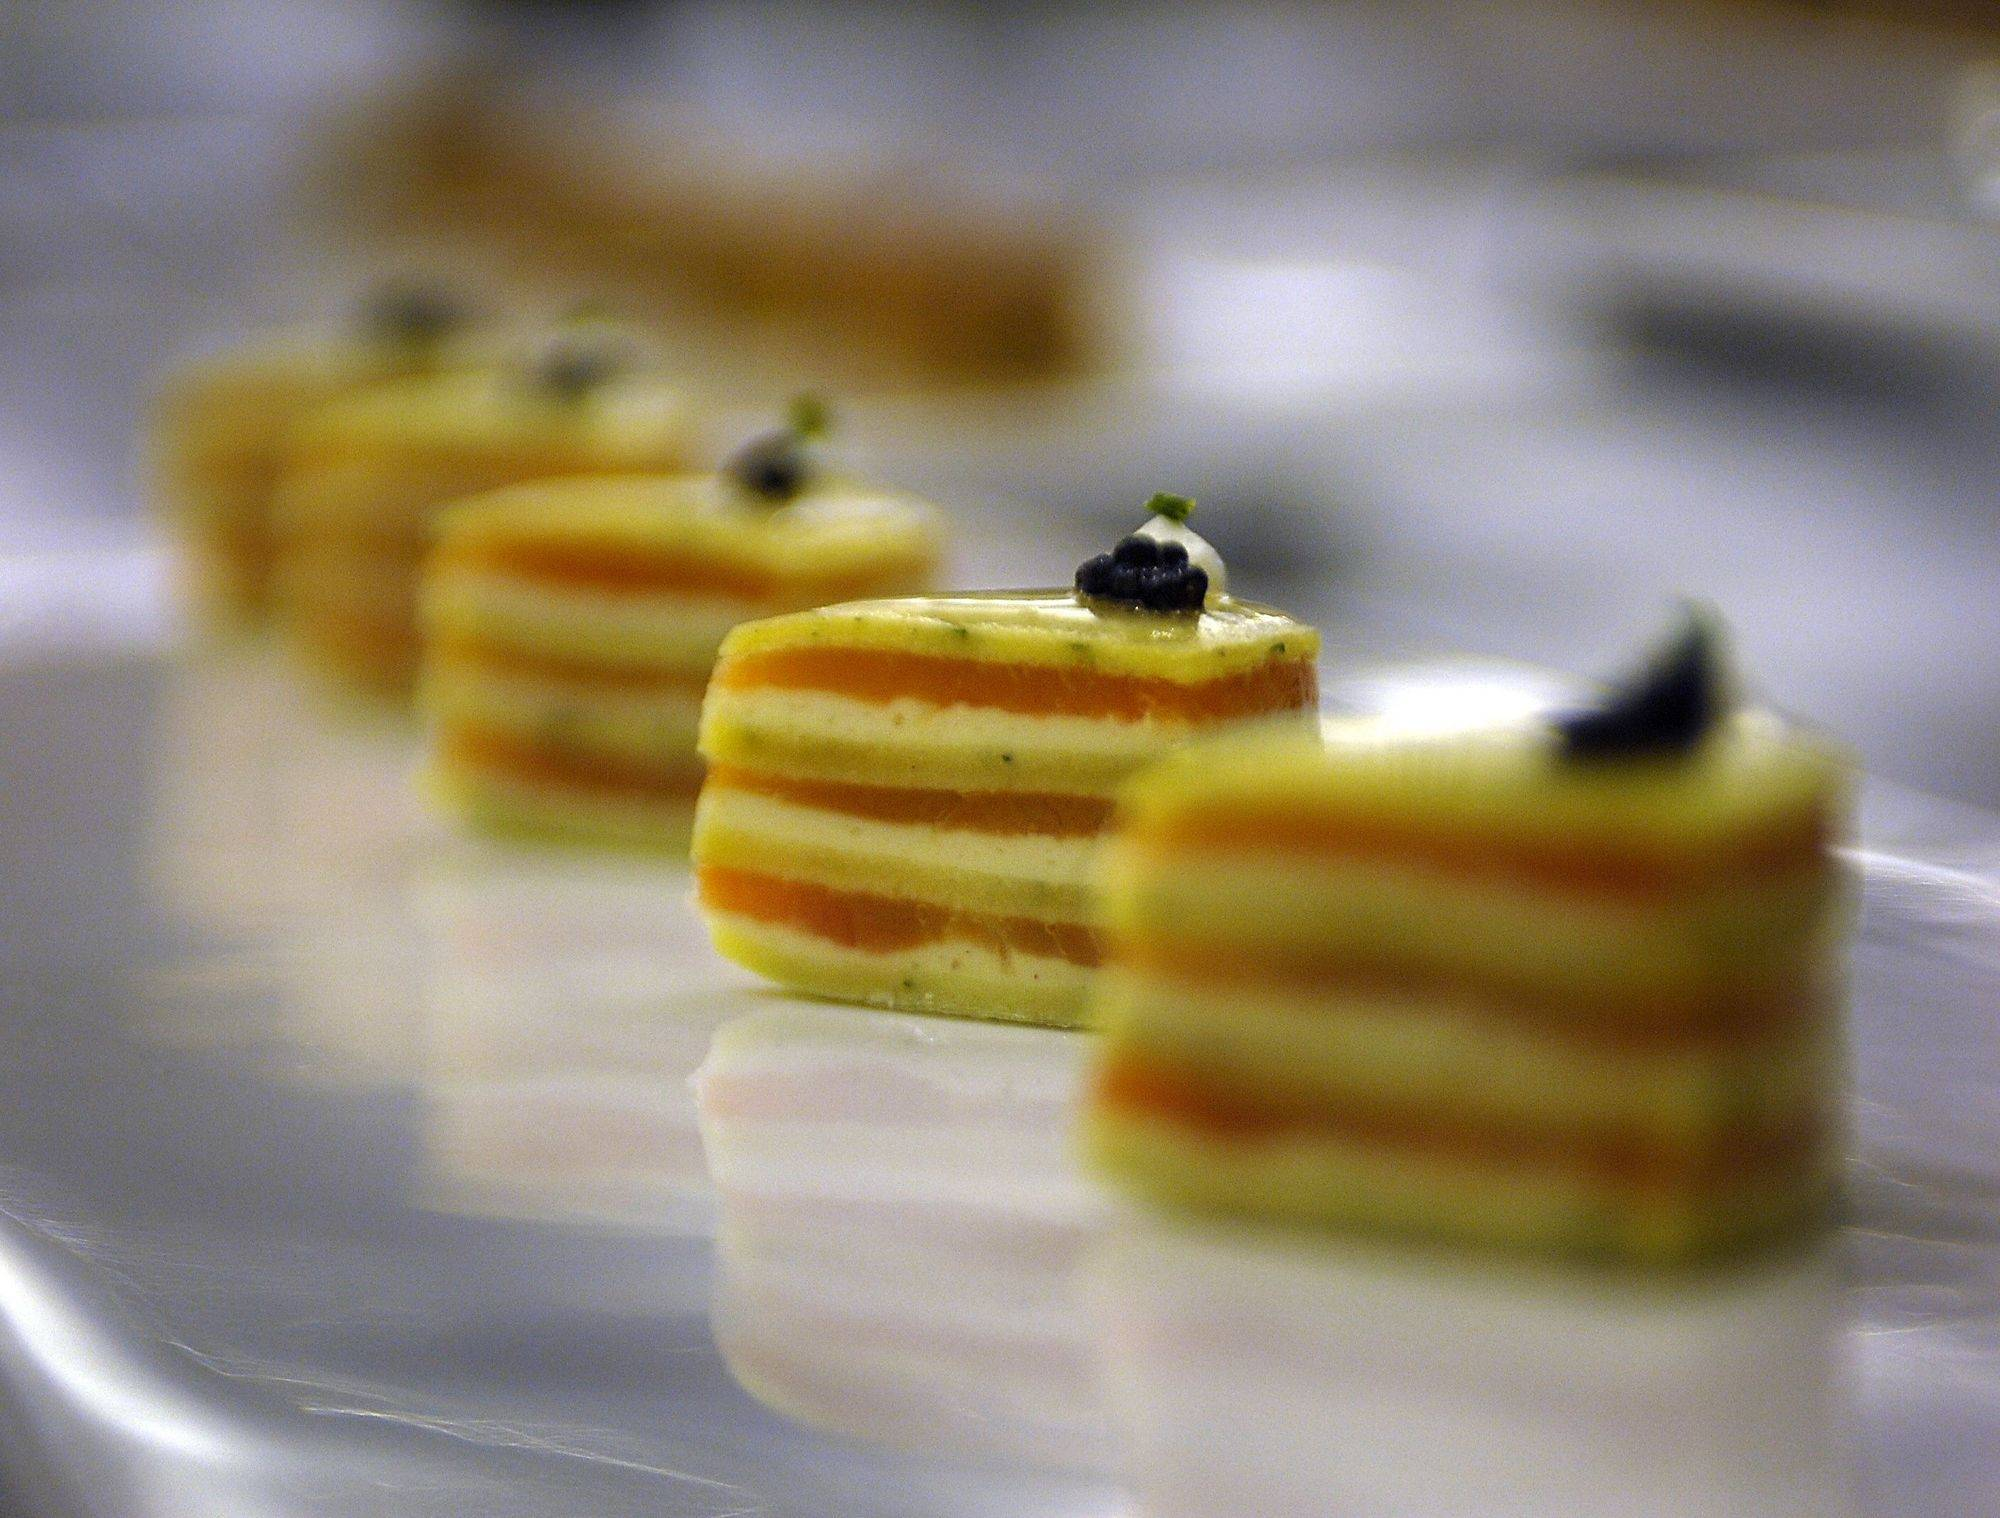 Caviar-topped terrine of salmon and crepes was one of the dishes created by Unilever corporate chef Rudy Smith as he tried out for the team that will compete in the culinary Olympics in 2012.